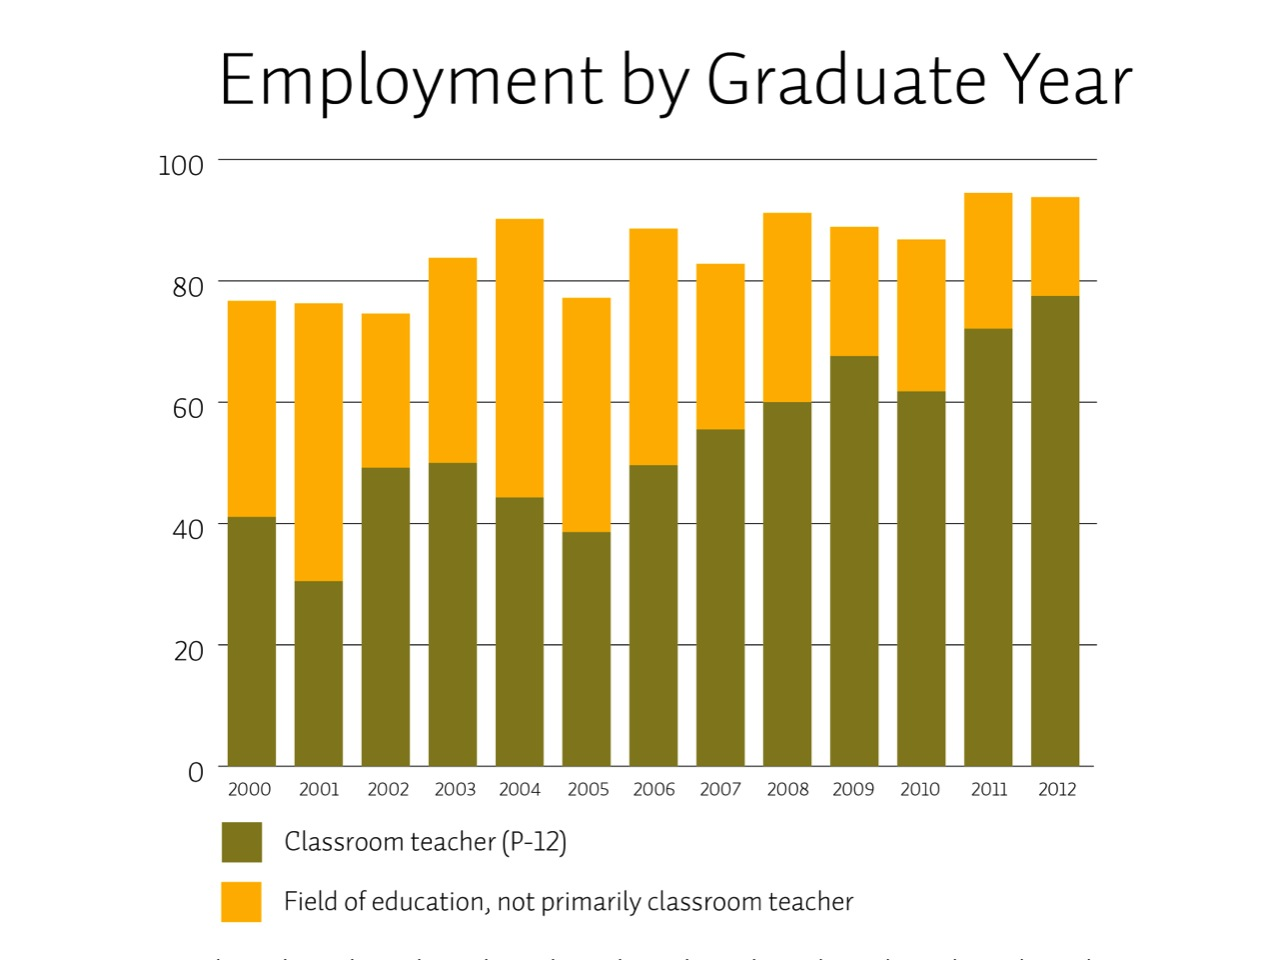 Employment by Graduate Year